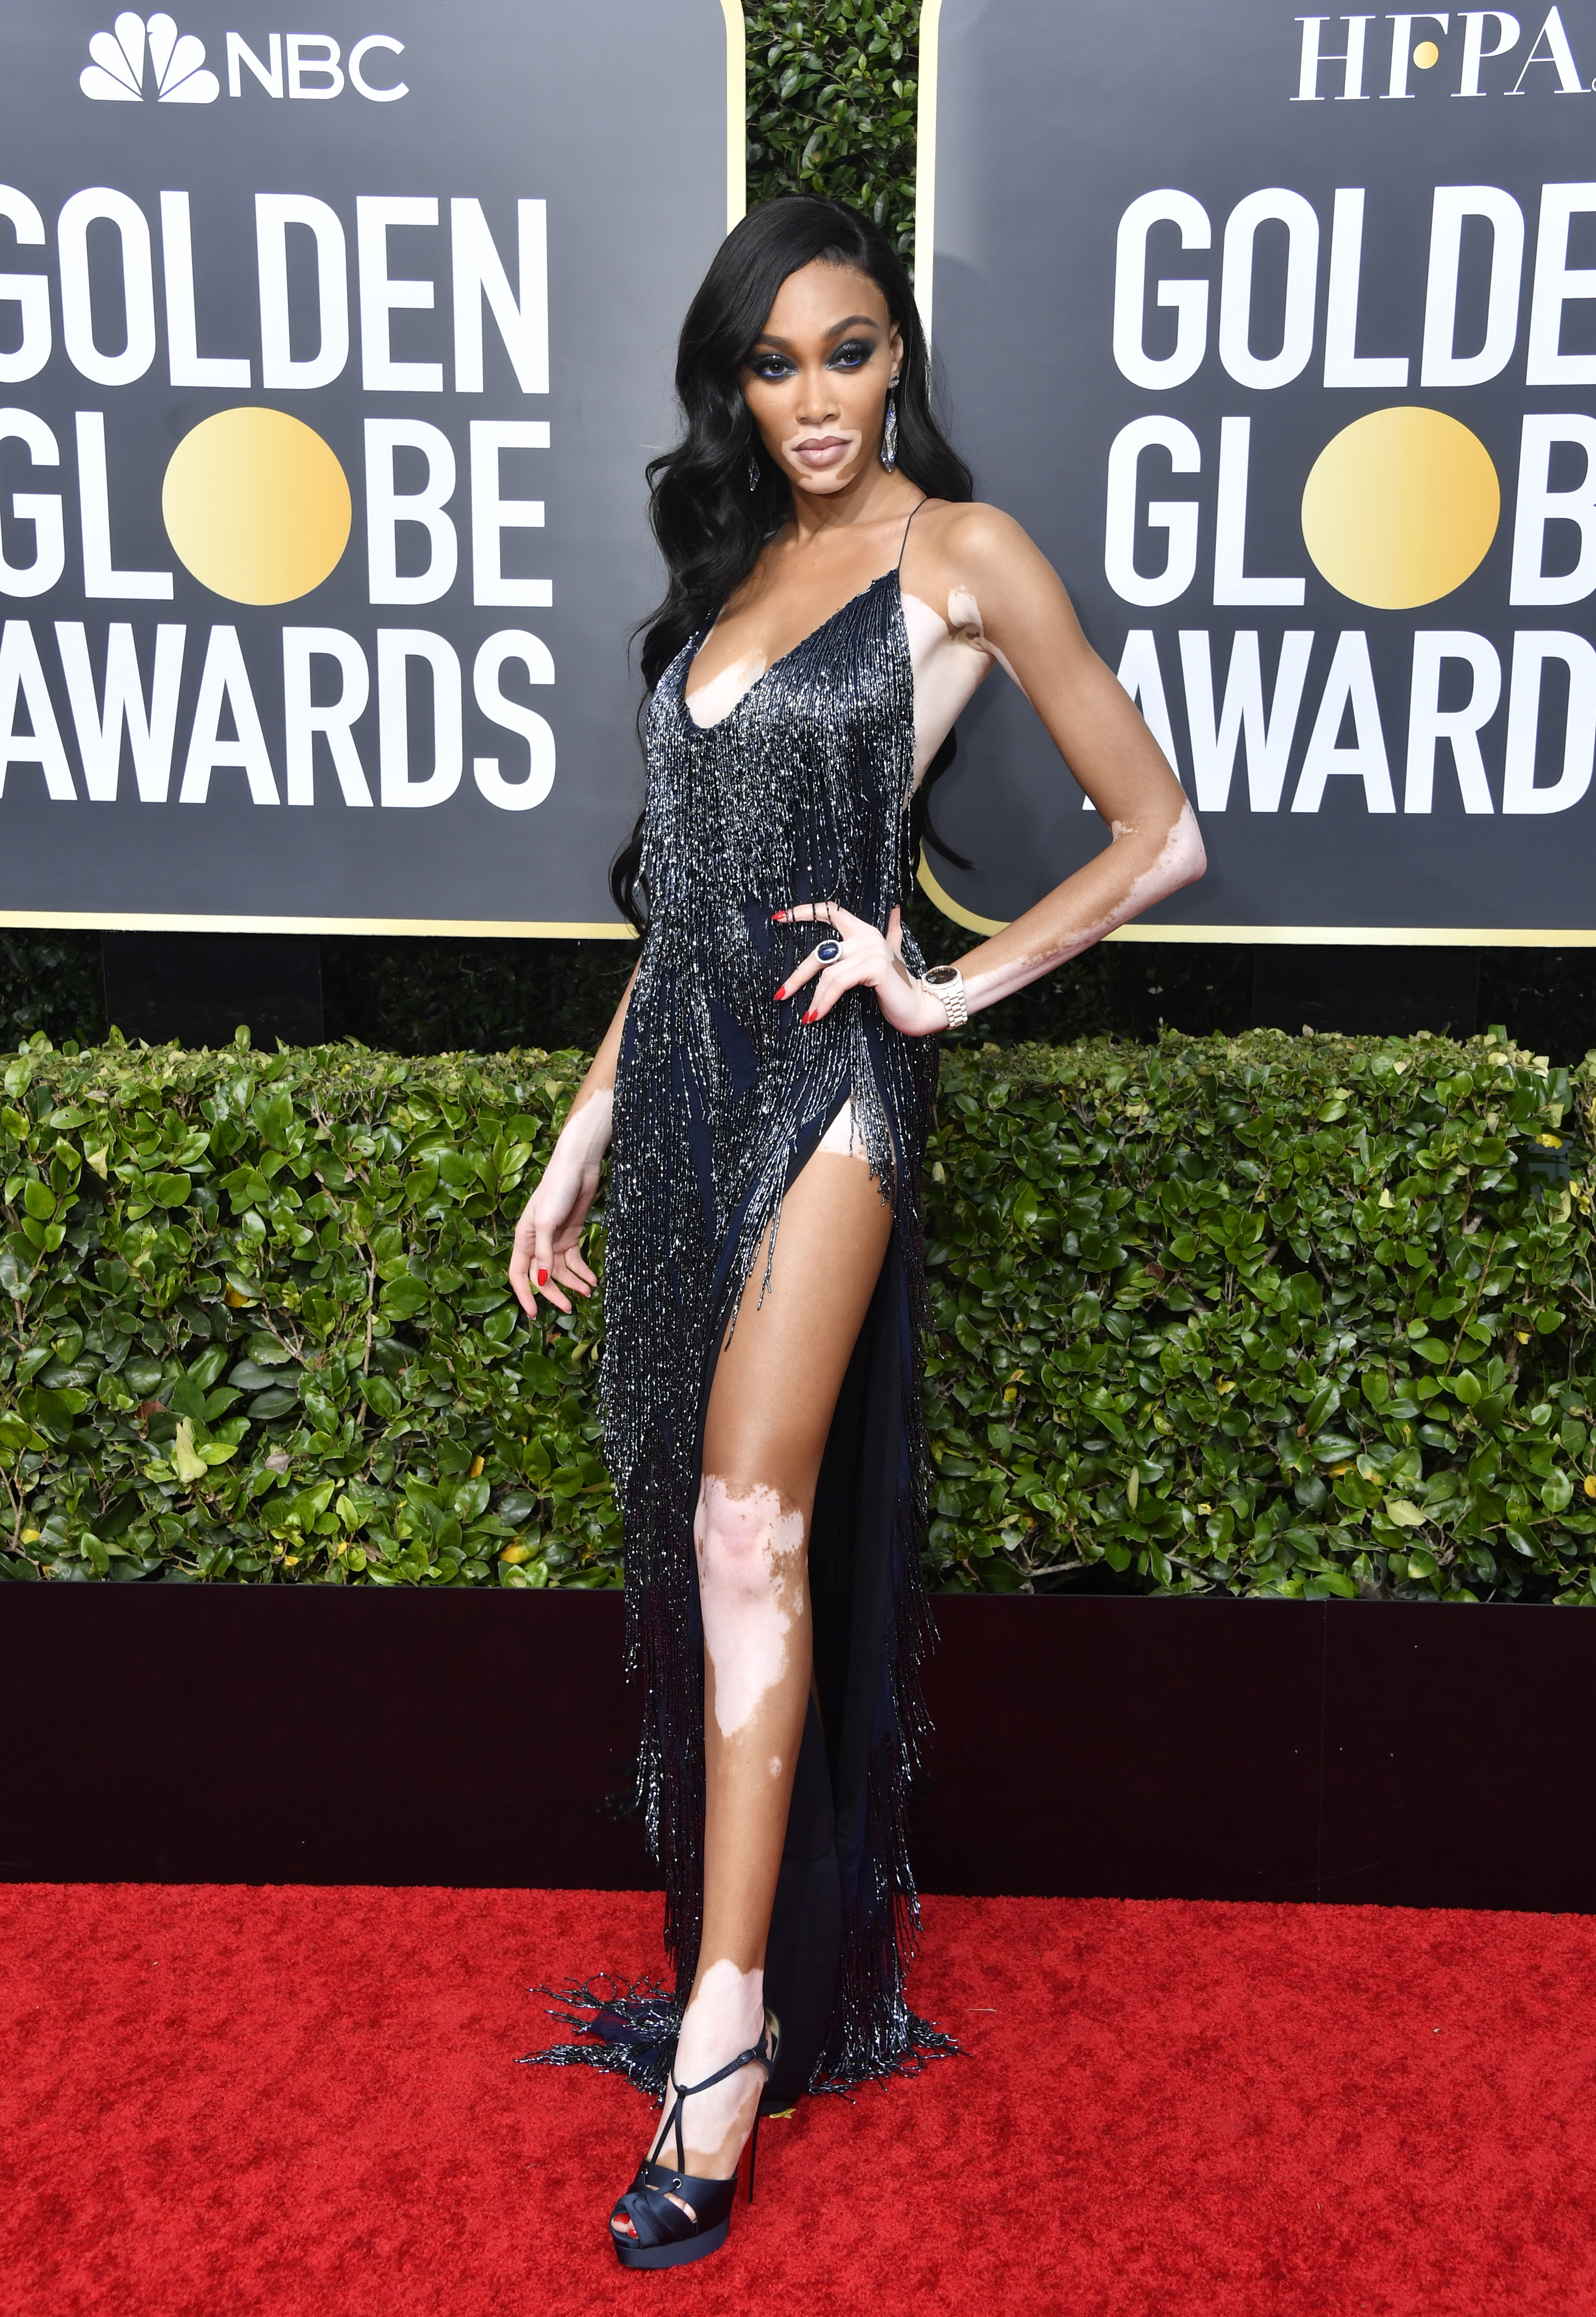 BEVERLY HILLS, CALIFORNIA - JANUARY 05: Winnie Harlow attends the 77th Annual Golden Globe Awards at The Beverly Hilton Hotel on January 05, 2020 in Beverly Hills, California. (Photo by Frazer Harrison/Getty Images)